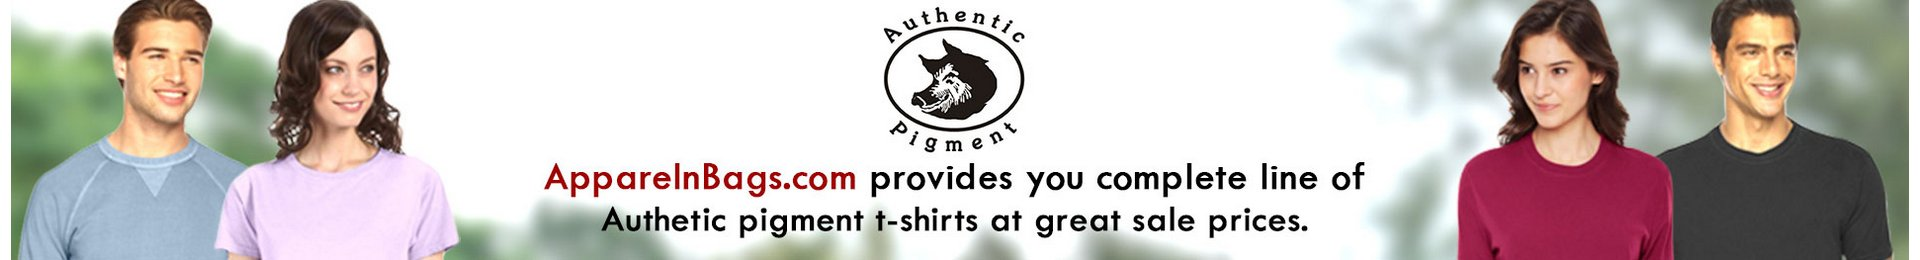 Authentic Pigment T-Shirts